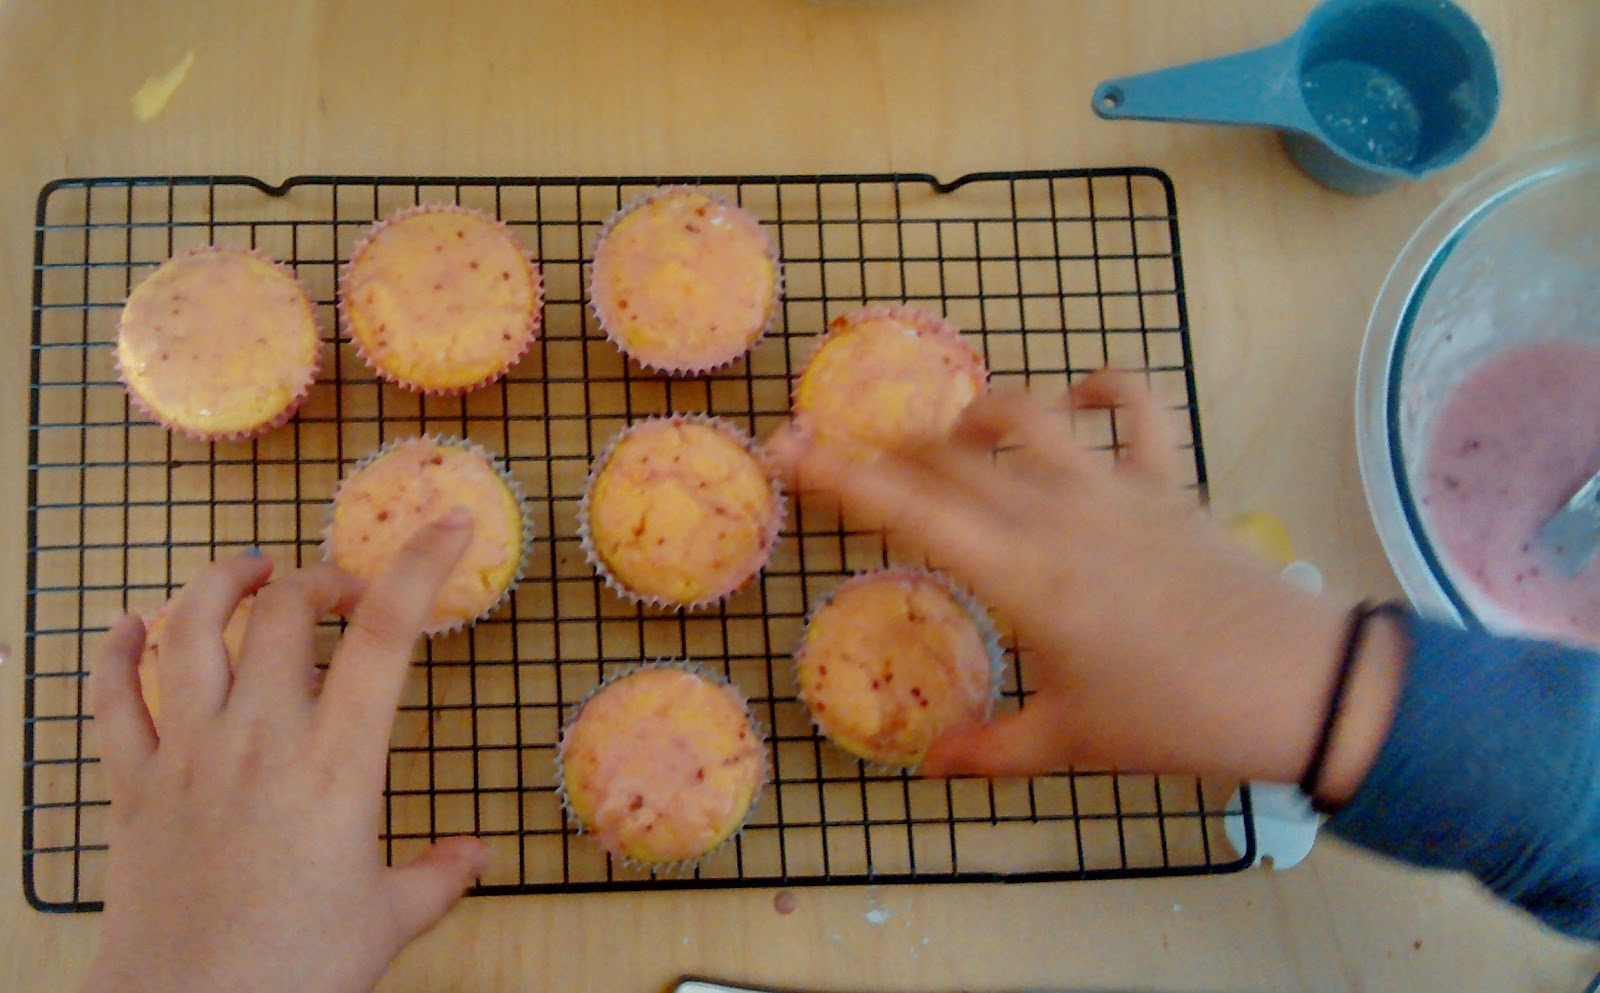 lemon-raspberry cupcakes with yang the hand model